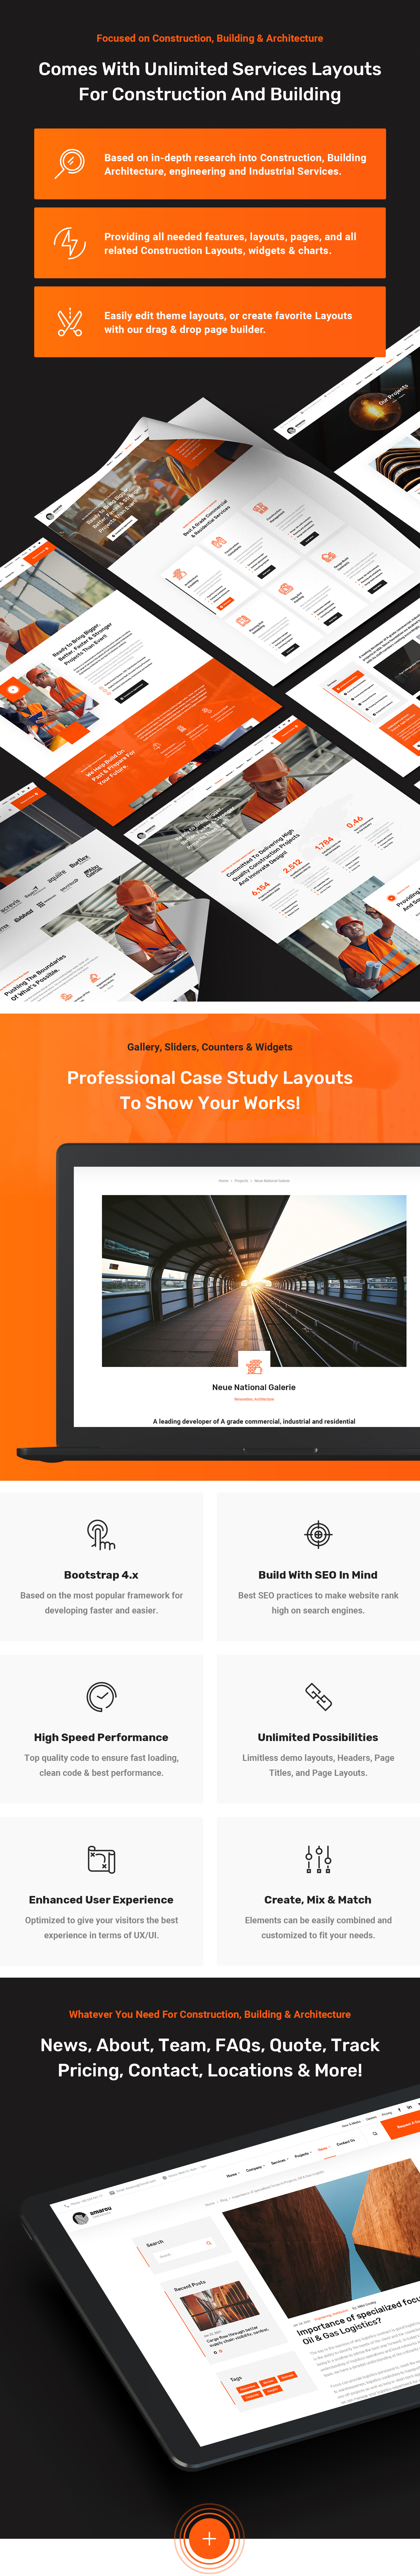 Amarou - Construction and Building HTML5 Template - 7